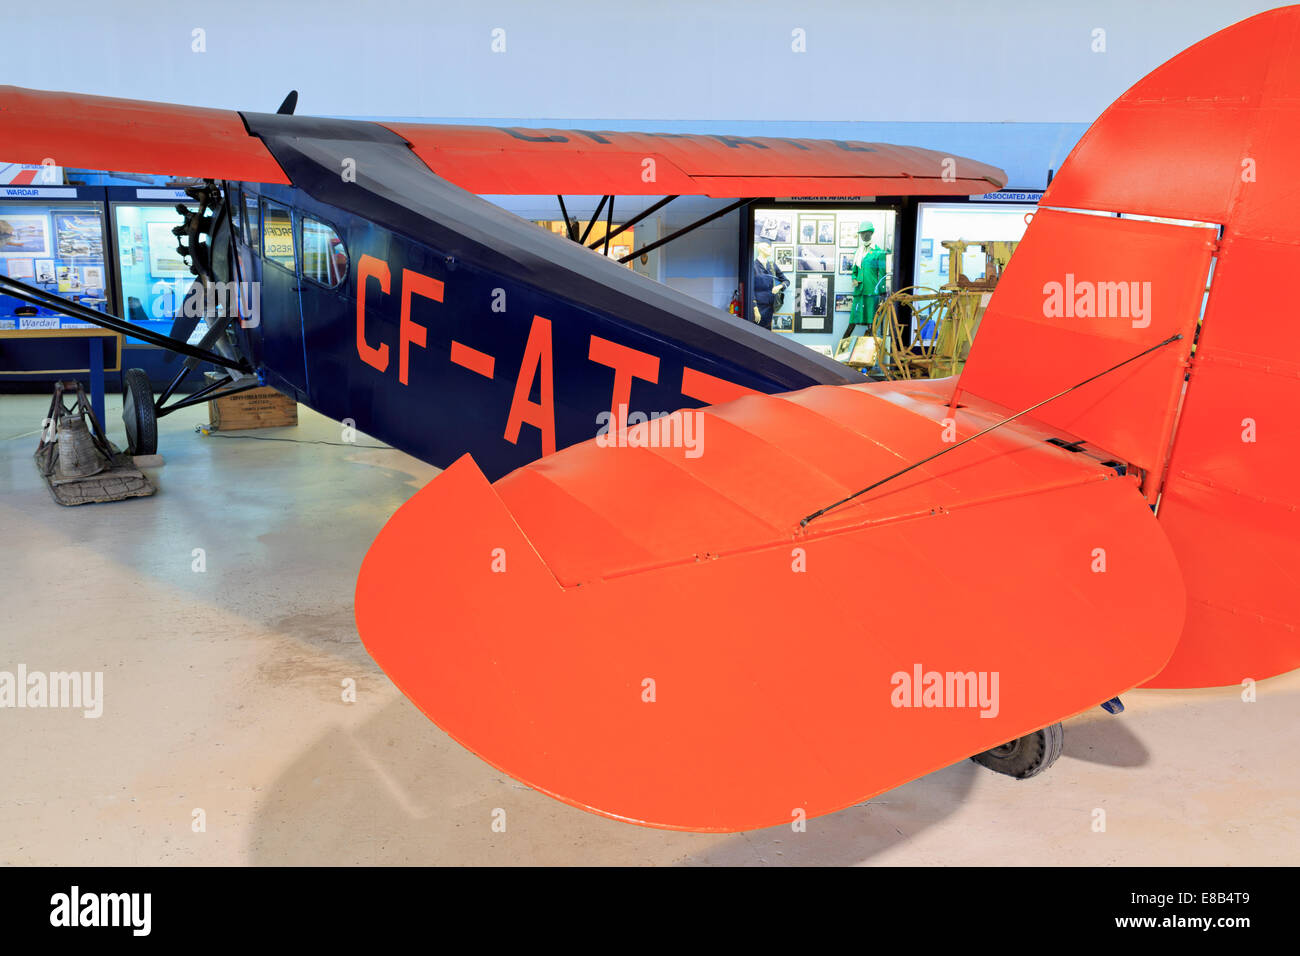 Alberta Aviation Museum, Edmonton, Alberta, Canada - Stock Image